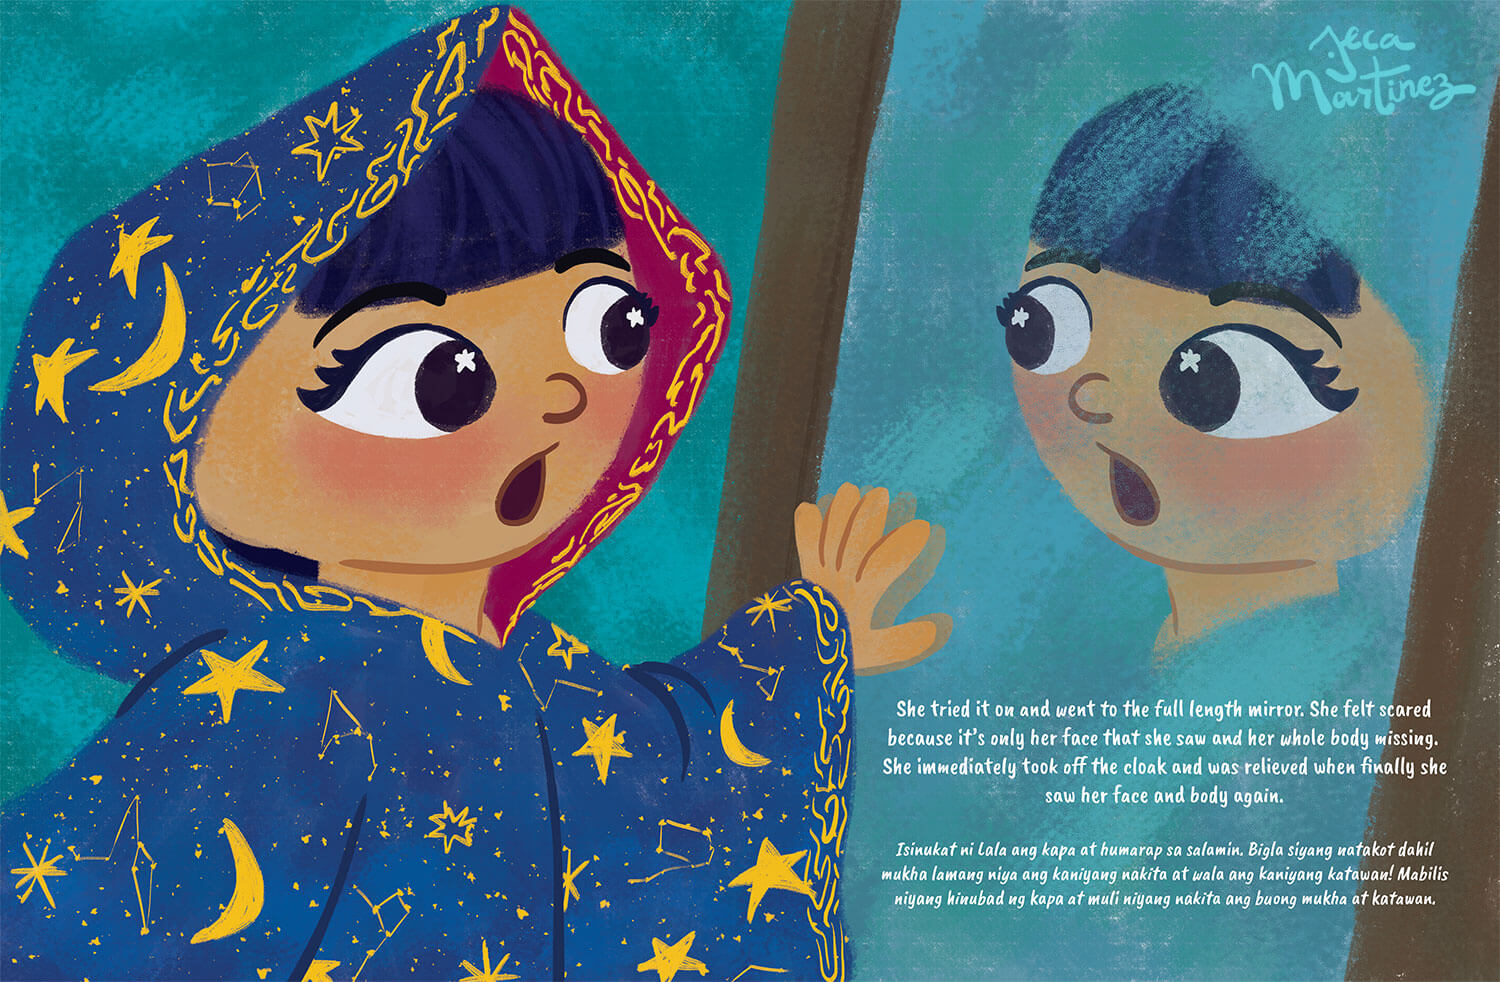 Children's Book Illustration by Jeca Martinez for Lala and the Enchanted Cloak 2